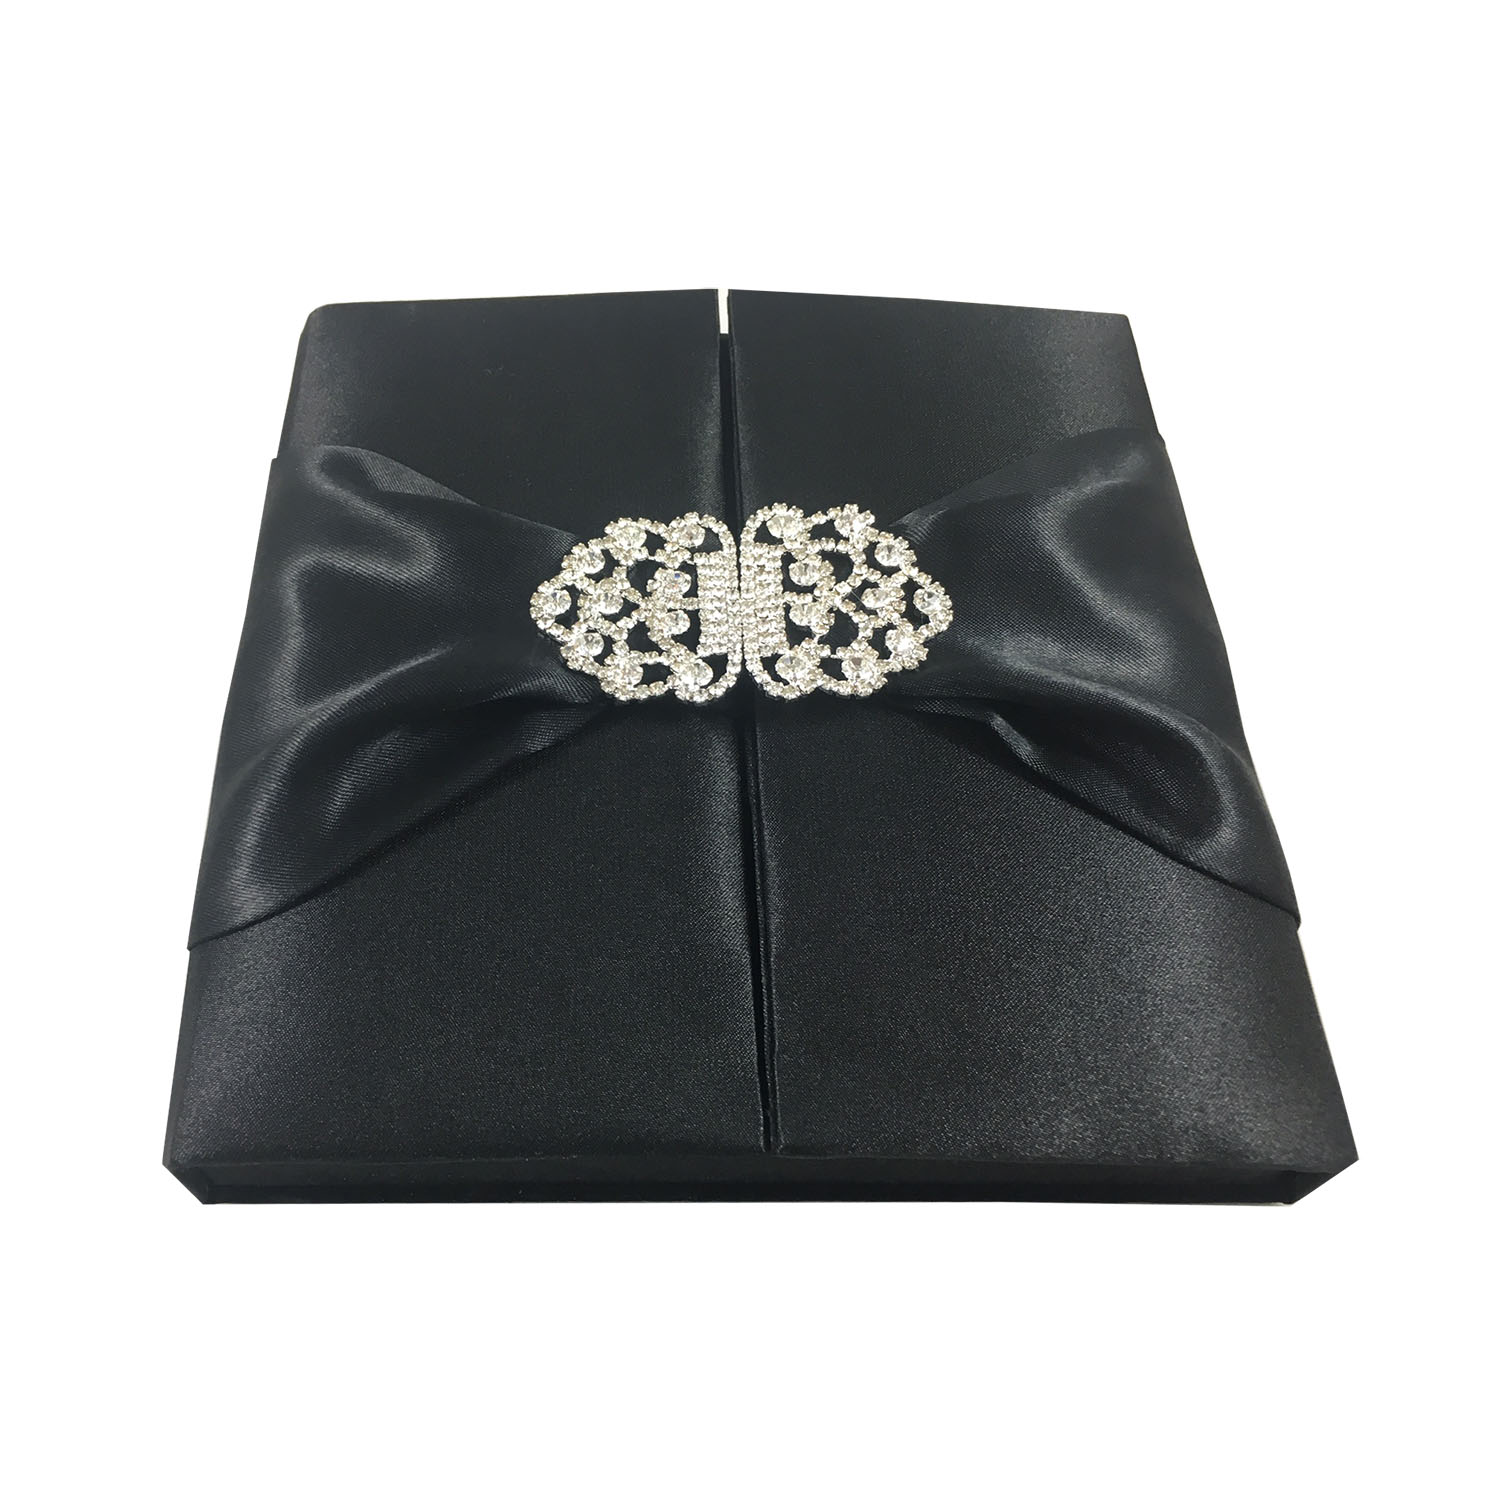 Black silk box for wedding invitations